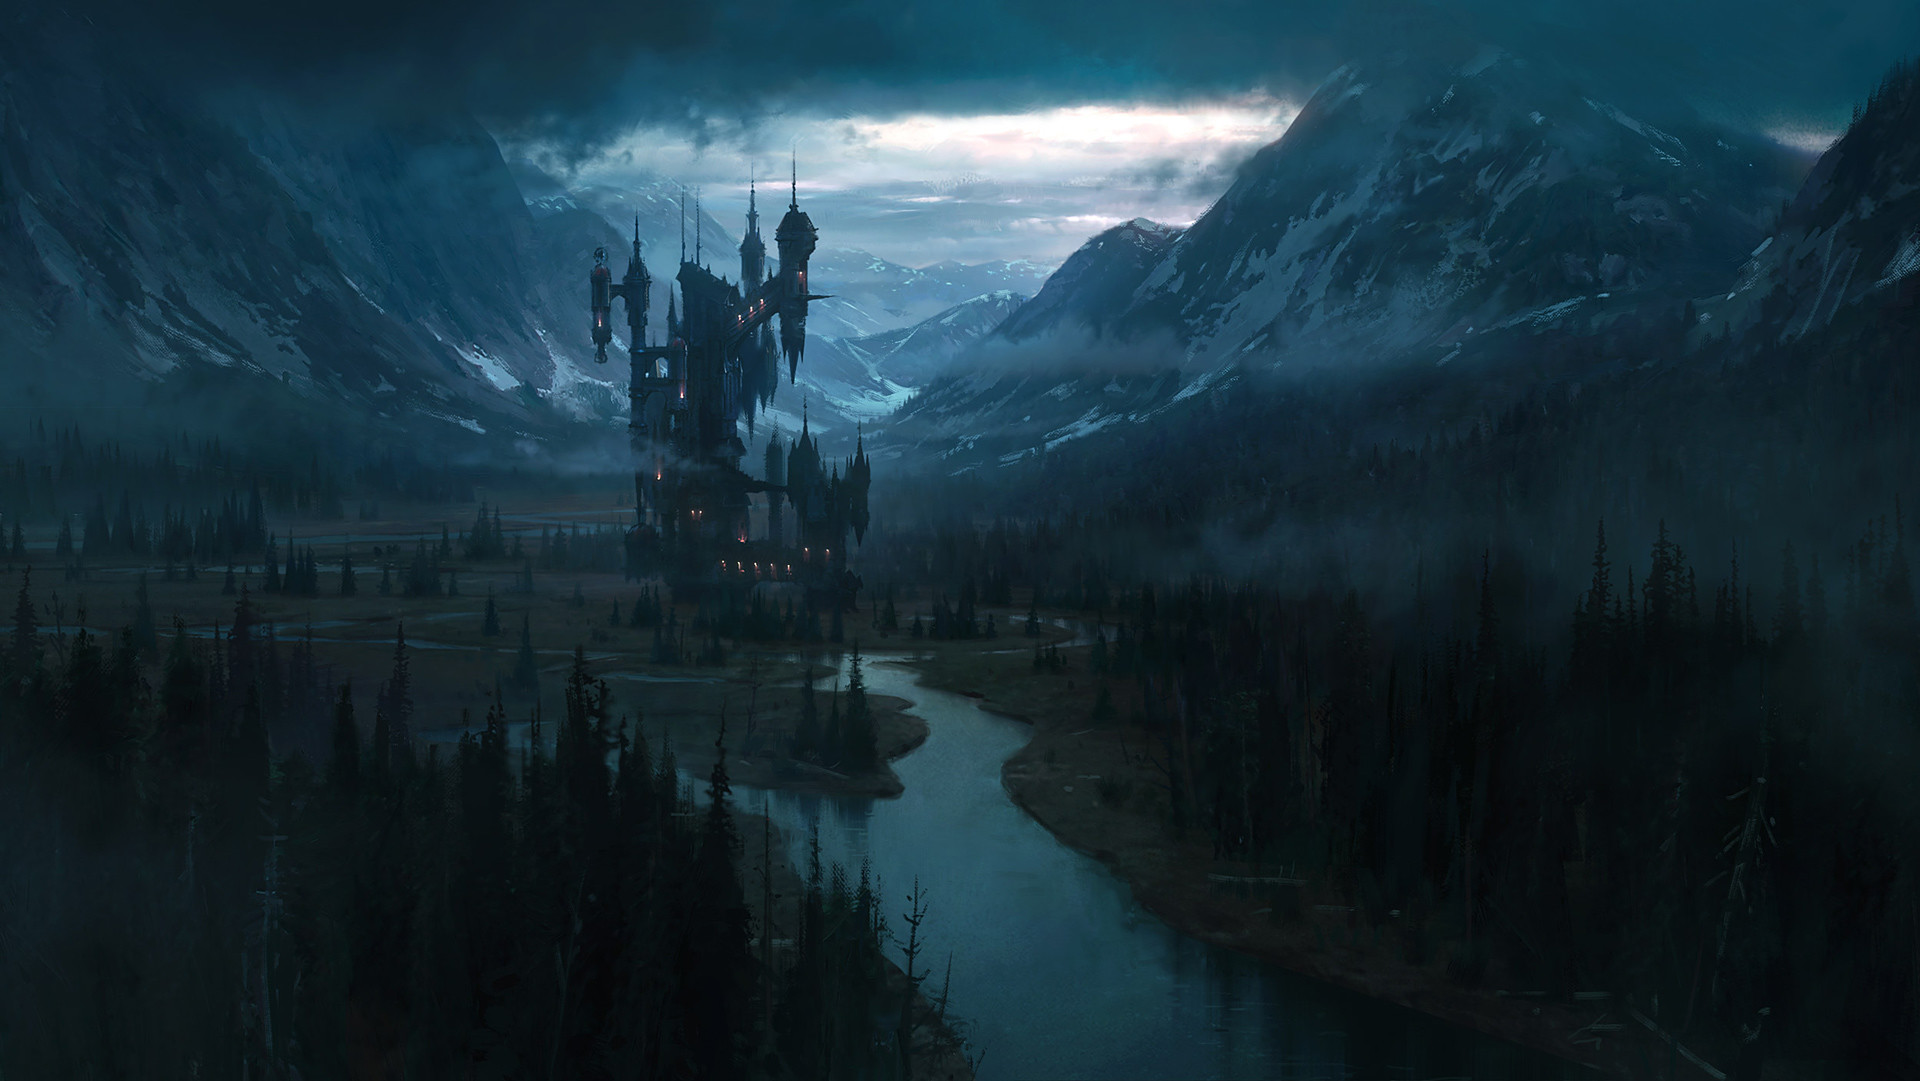 sean-vo-seanvo-curse-castle-forest-clearing.jpg